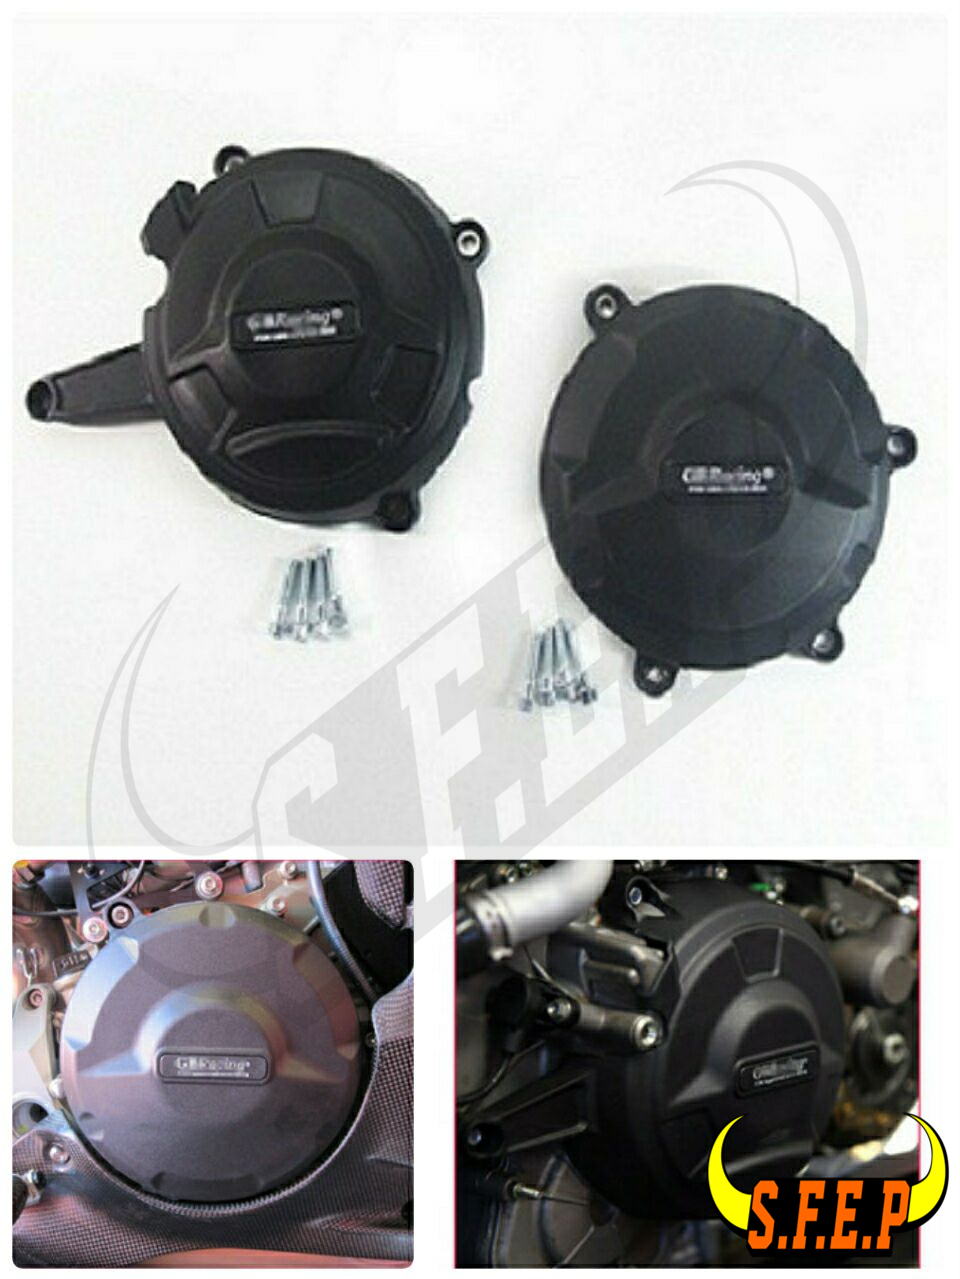 Motorcycle Engine Case Guard Protector Cover GB Racing For Ducati 1199 Panigale 2012-2014 / 1299 Panigale 2016 Black